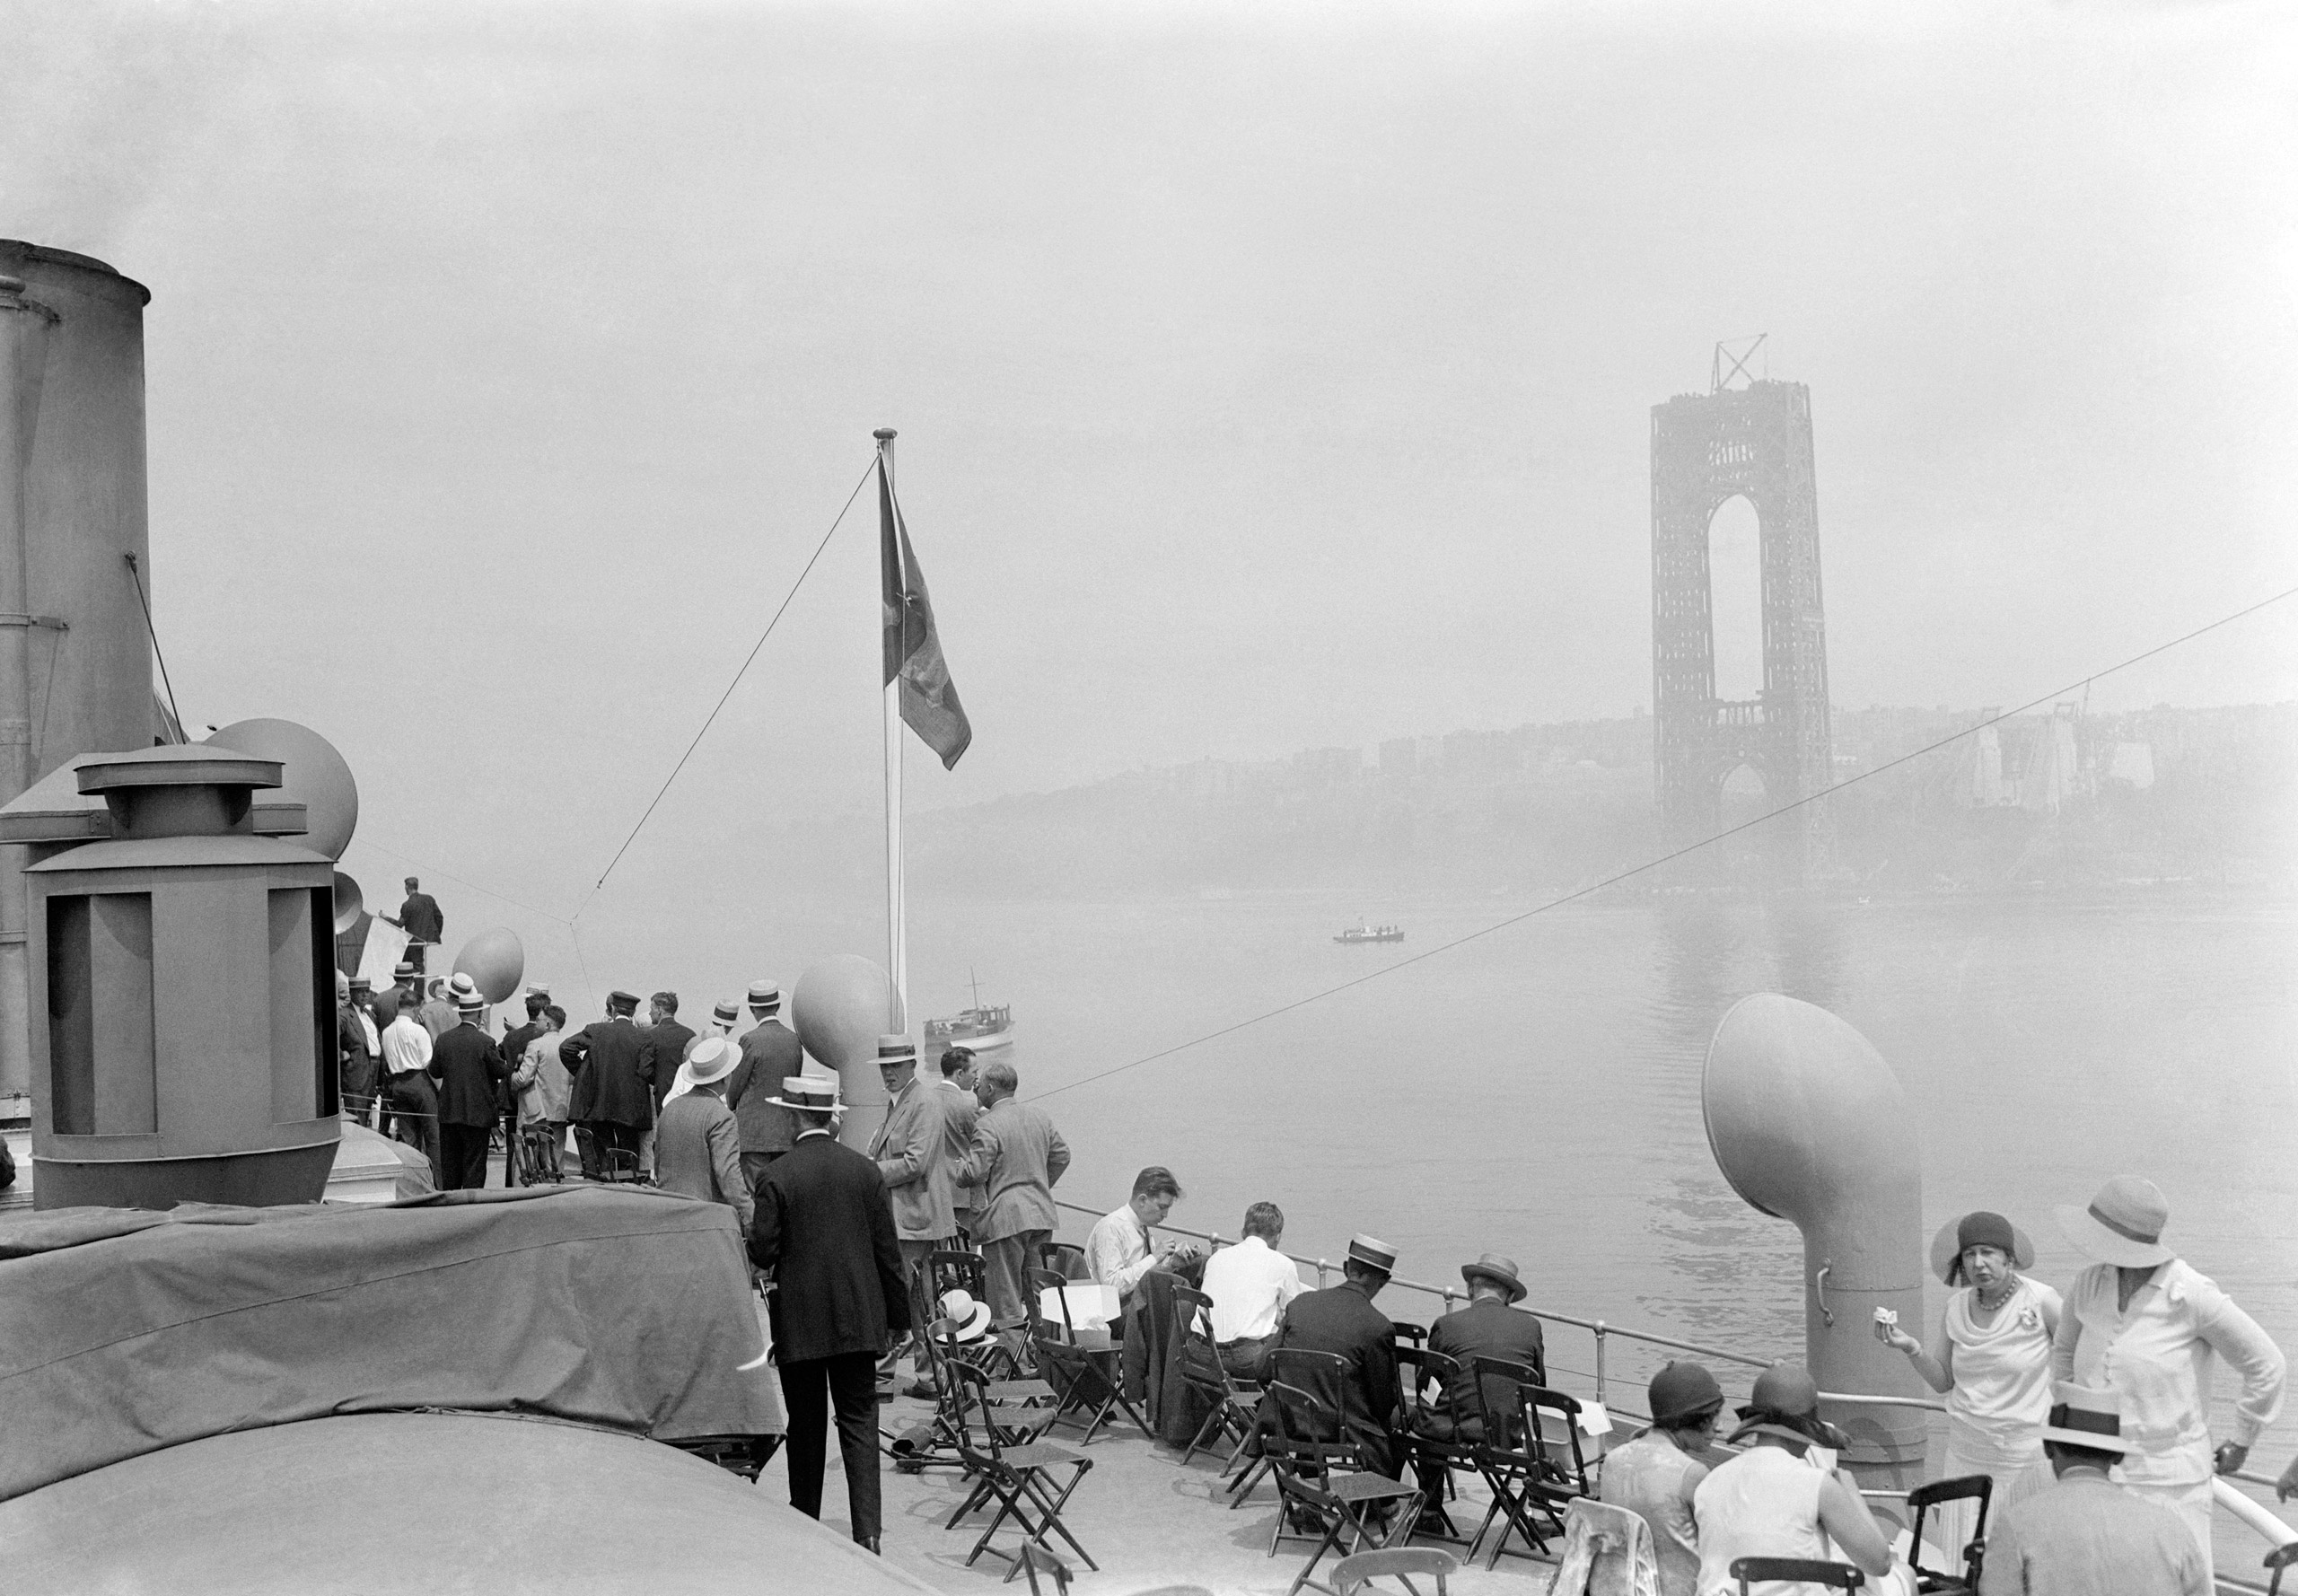 New Jersey and New York connected together by first cable of the new Hudson River Bridge at 178th Street in New York City. Photo shows a general view of the crowd on the Hudson River Day Line steamer Peter Stuyvesant watching the raising of the cable of the new Hudson River Bridge. One of the large piers of the bridge may be seen in the background to where the cable was hoisted from the river bottom.